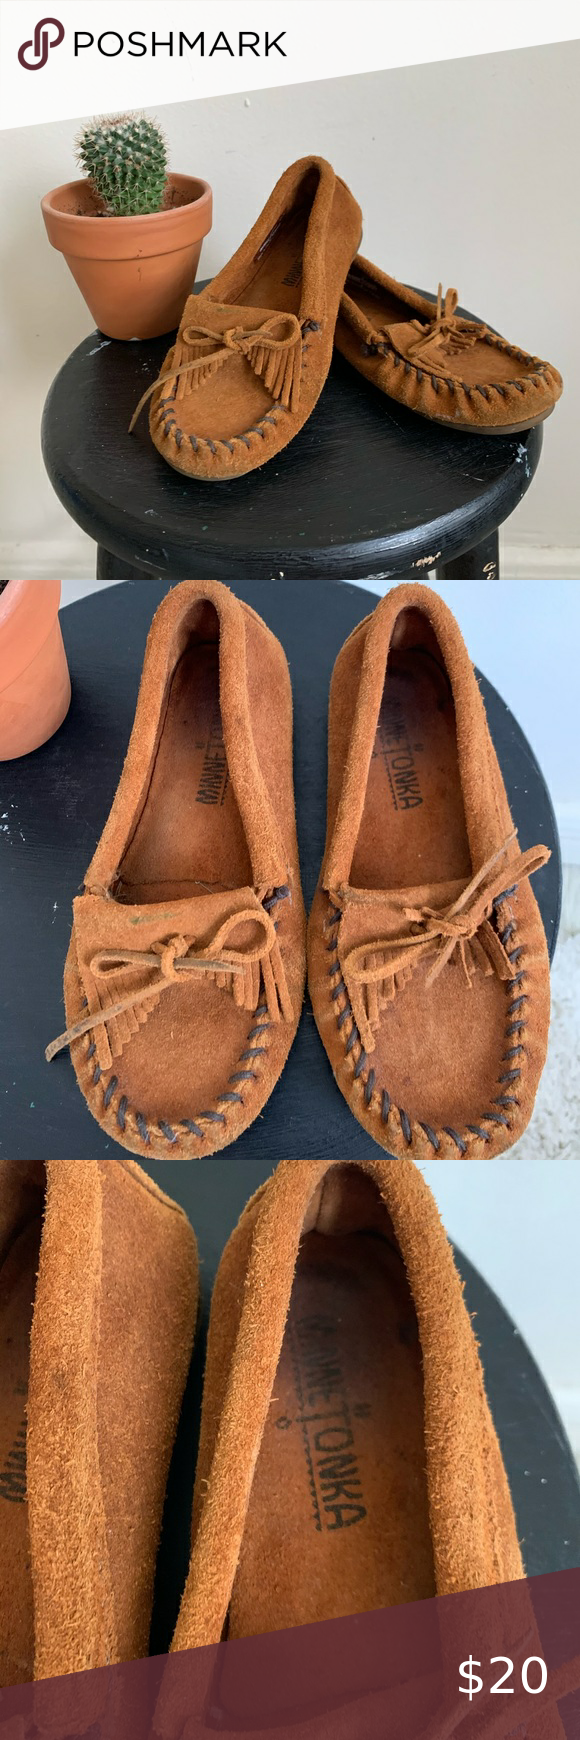 Minnetonka Kids Brown Suede Leather Moccasins Leather Moccasins Suede Leather Brown Suede